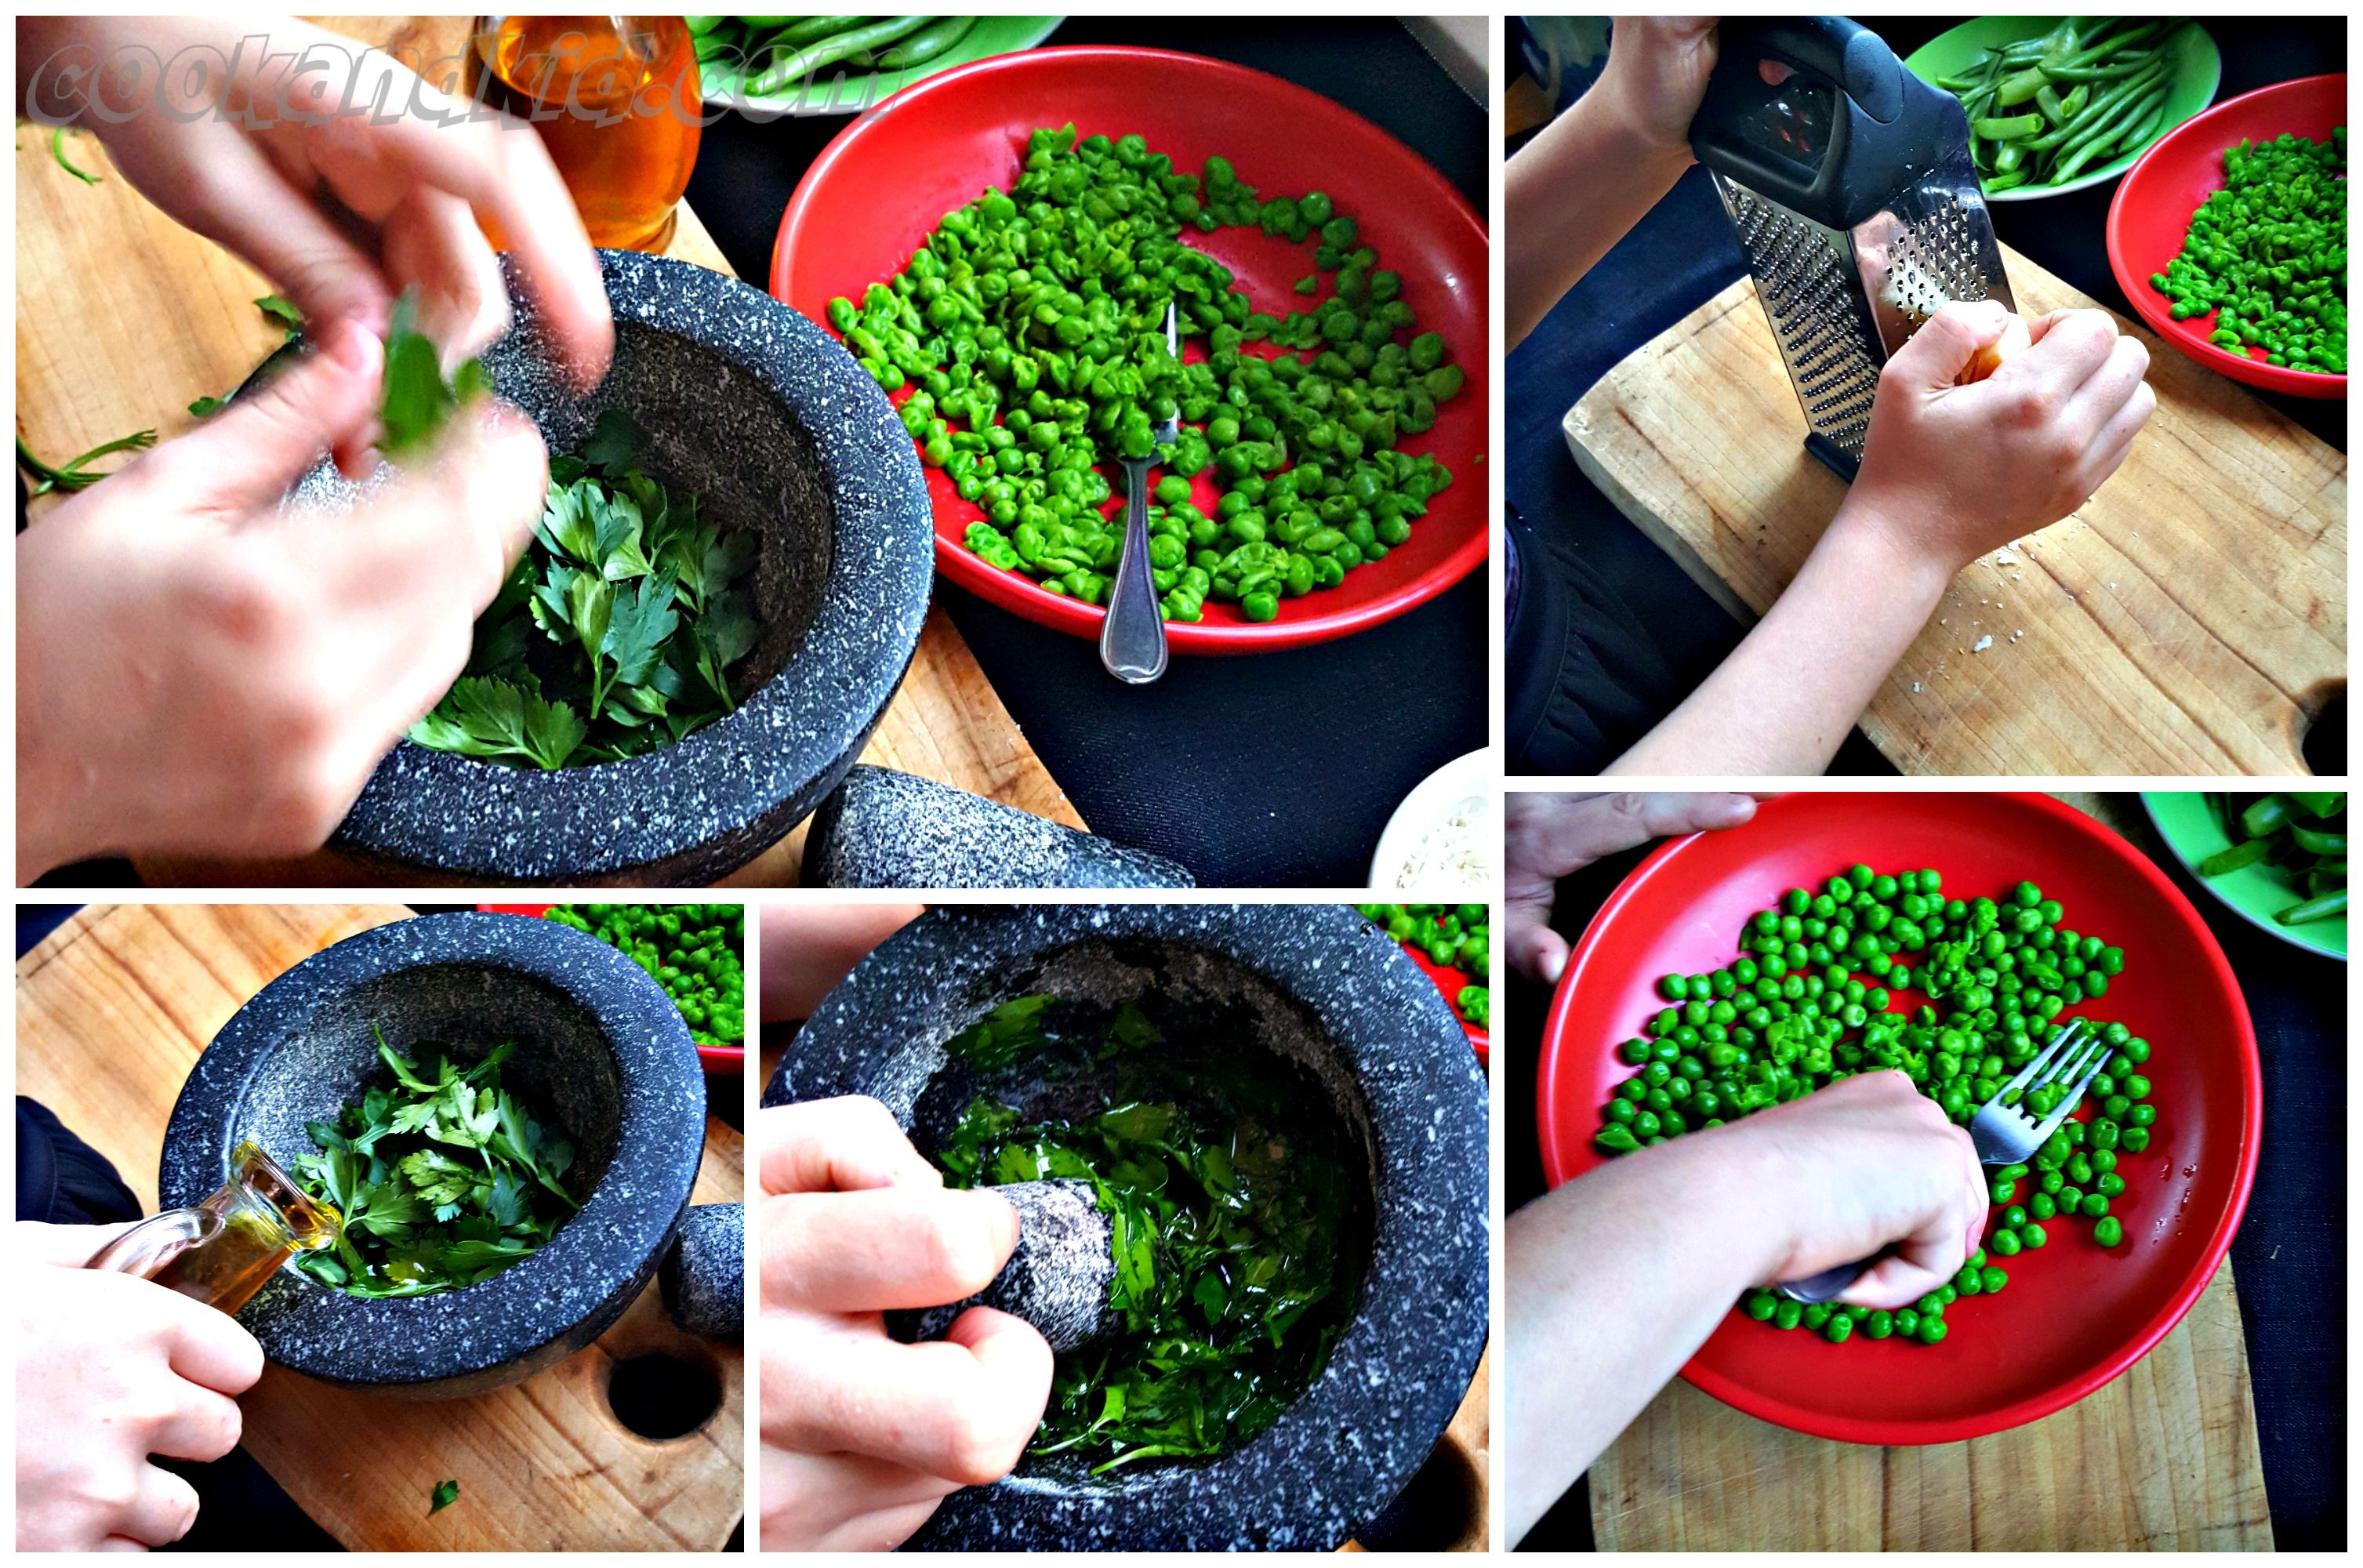 Kid keeps busy smooshing peas, picking herbs, cooking bacon, picking beans and more..